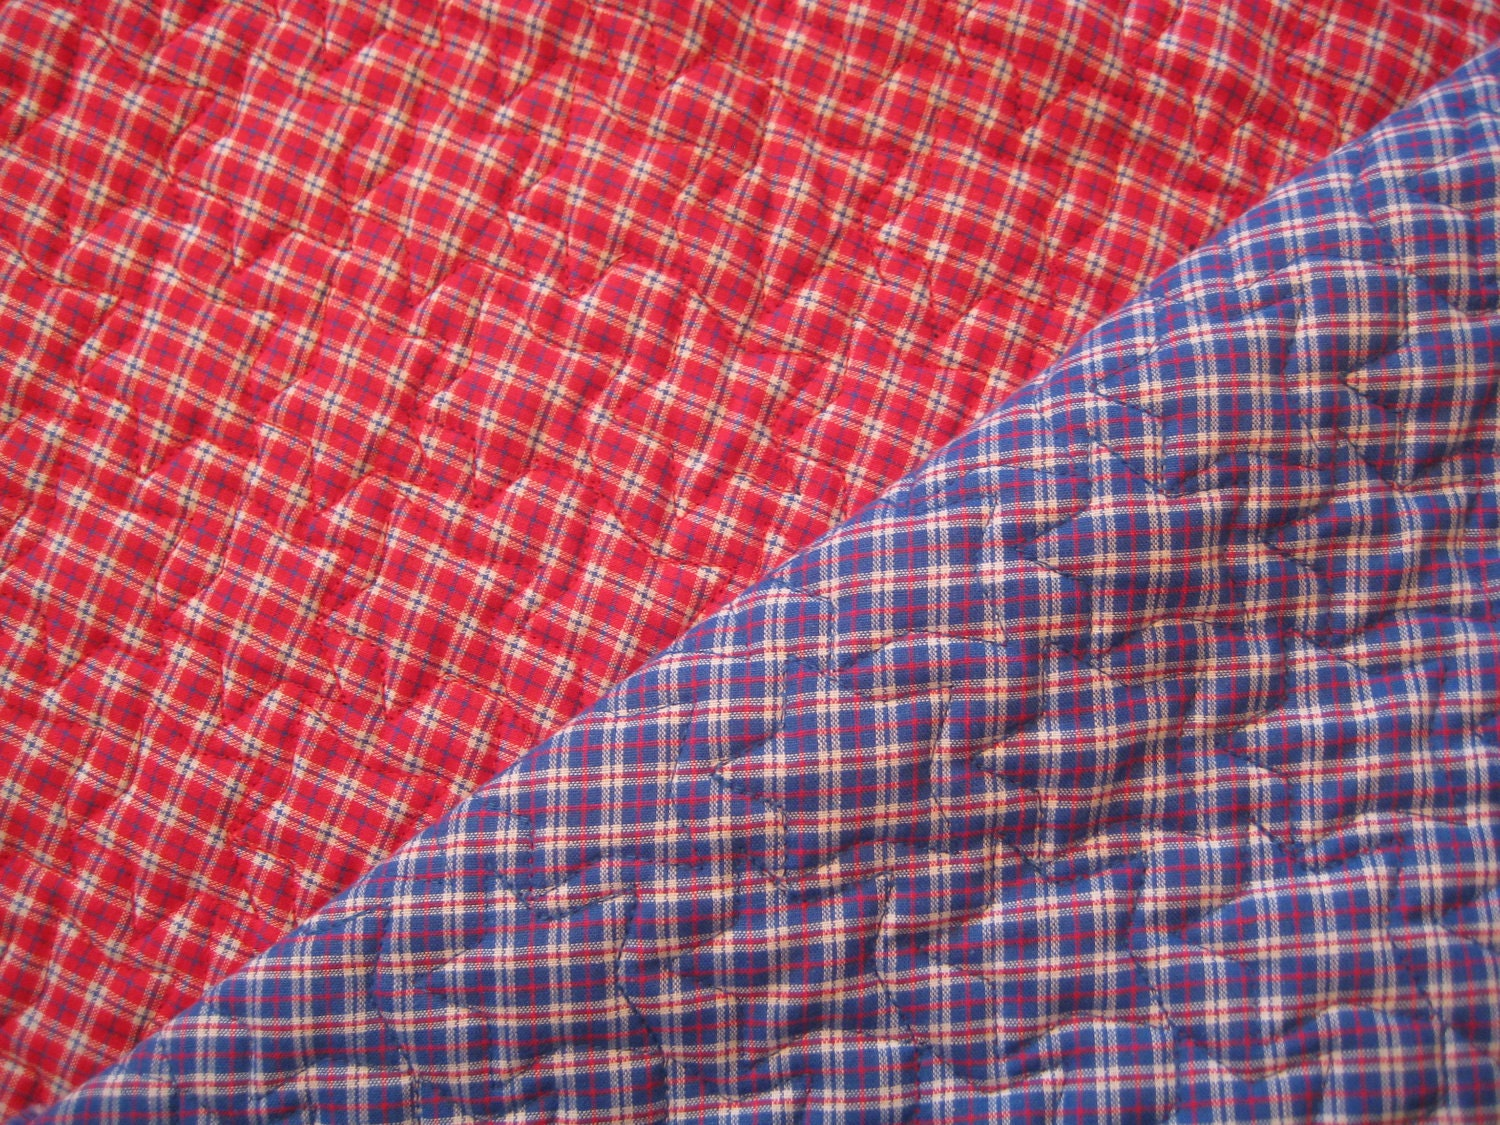 Quilted Fabric Blue Red & Blue Plai...